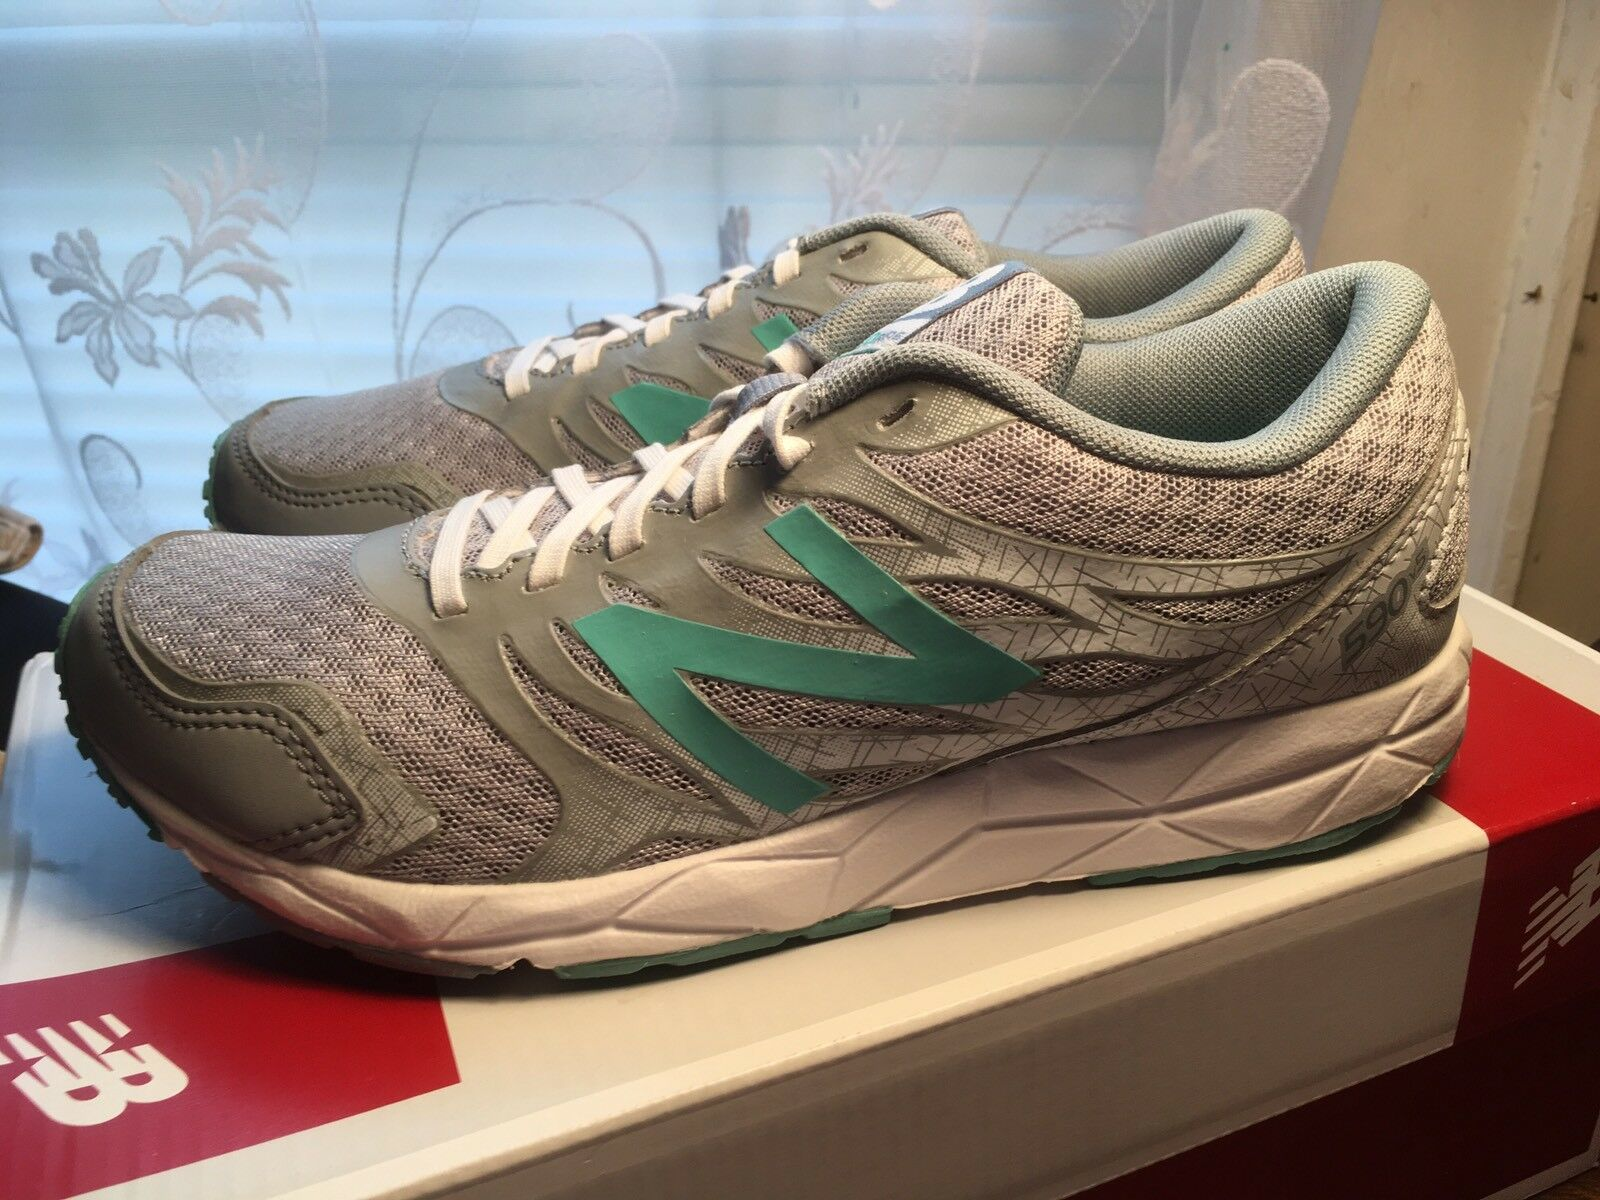 Womens New Balance 590 v5 Running Shoes Sneakers Sz 6 NWT